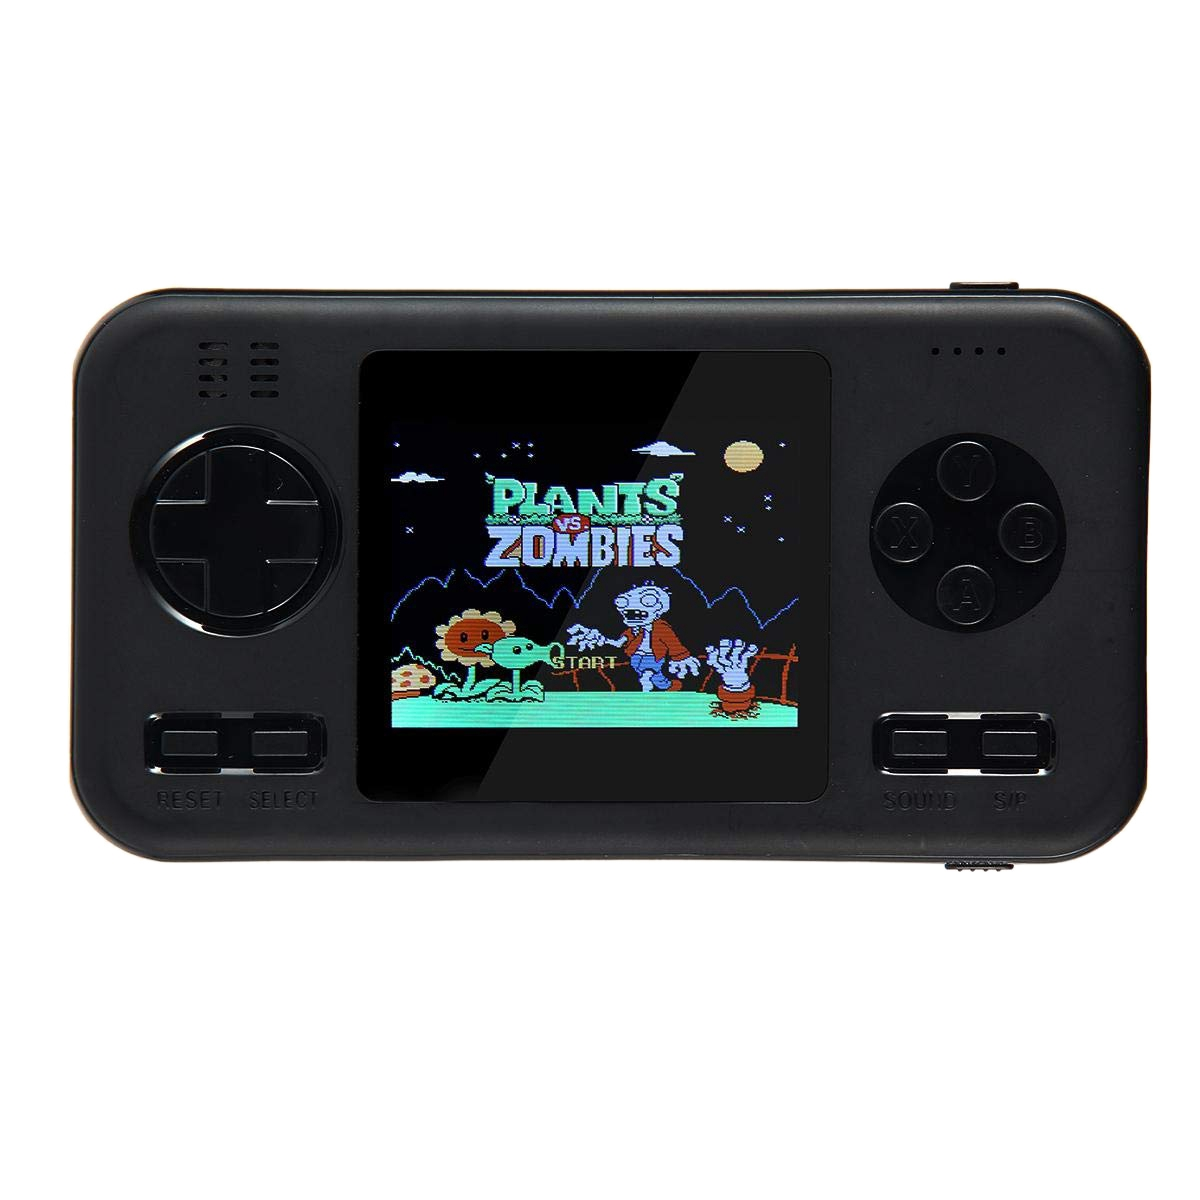 ABKT-416 Games Retro Game Console Travel Portable Gaming System,Power Bank 8000MAh Battery 2.8 Inch Color Screen Handheld Game M image